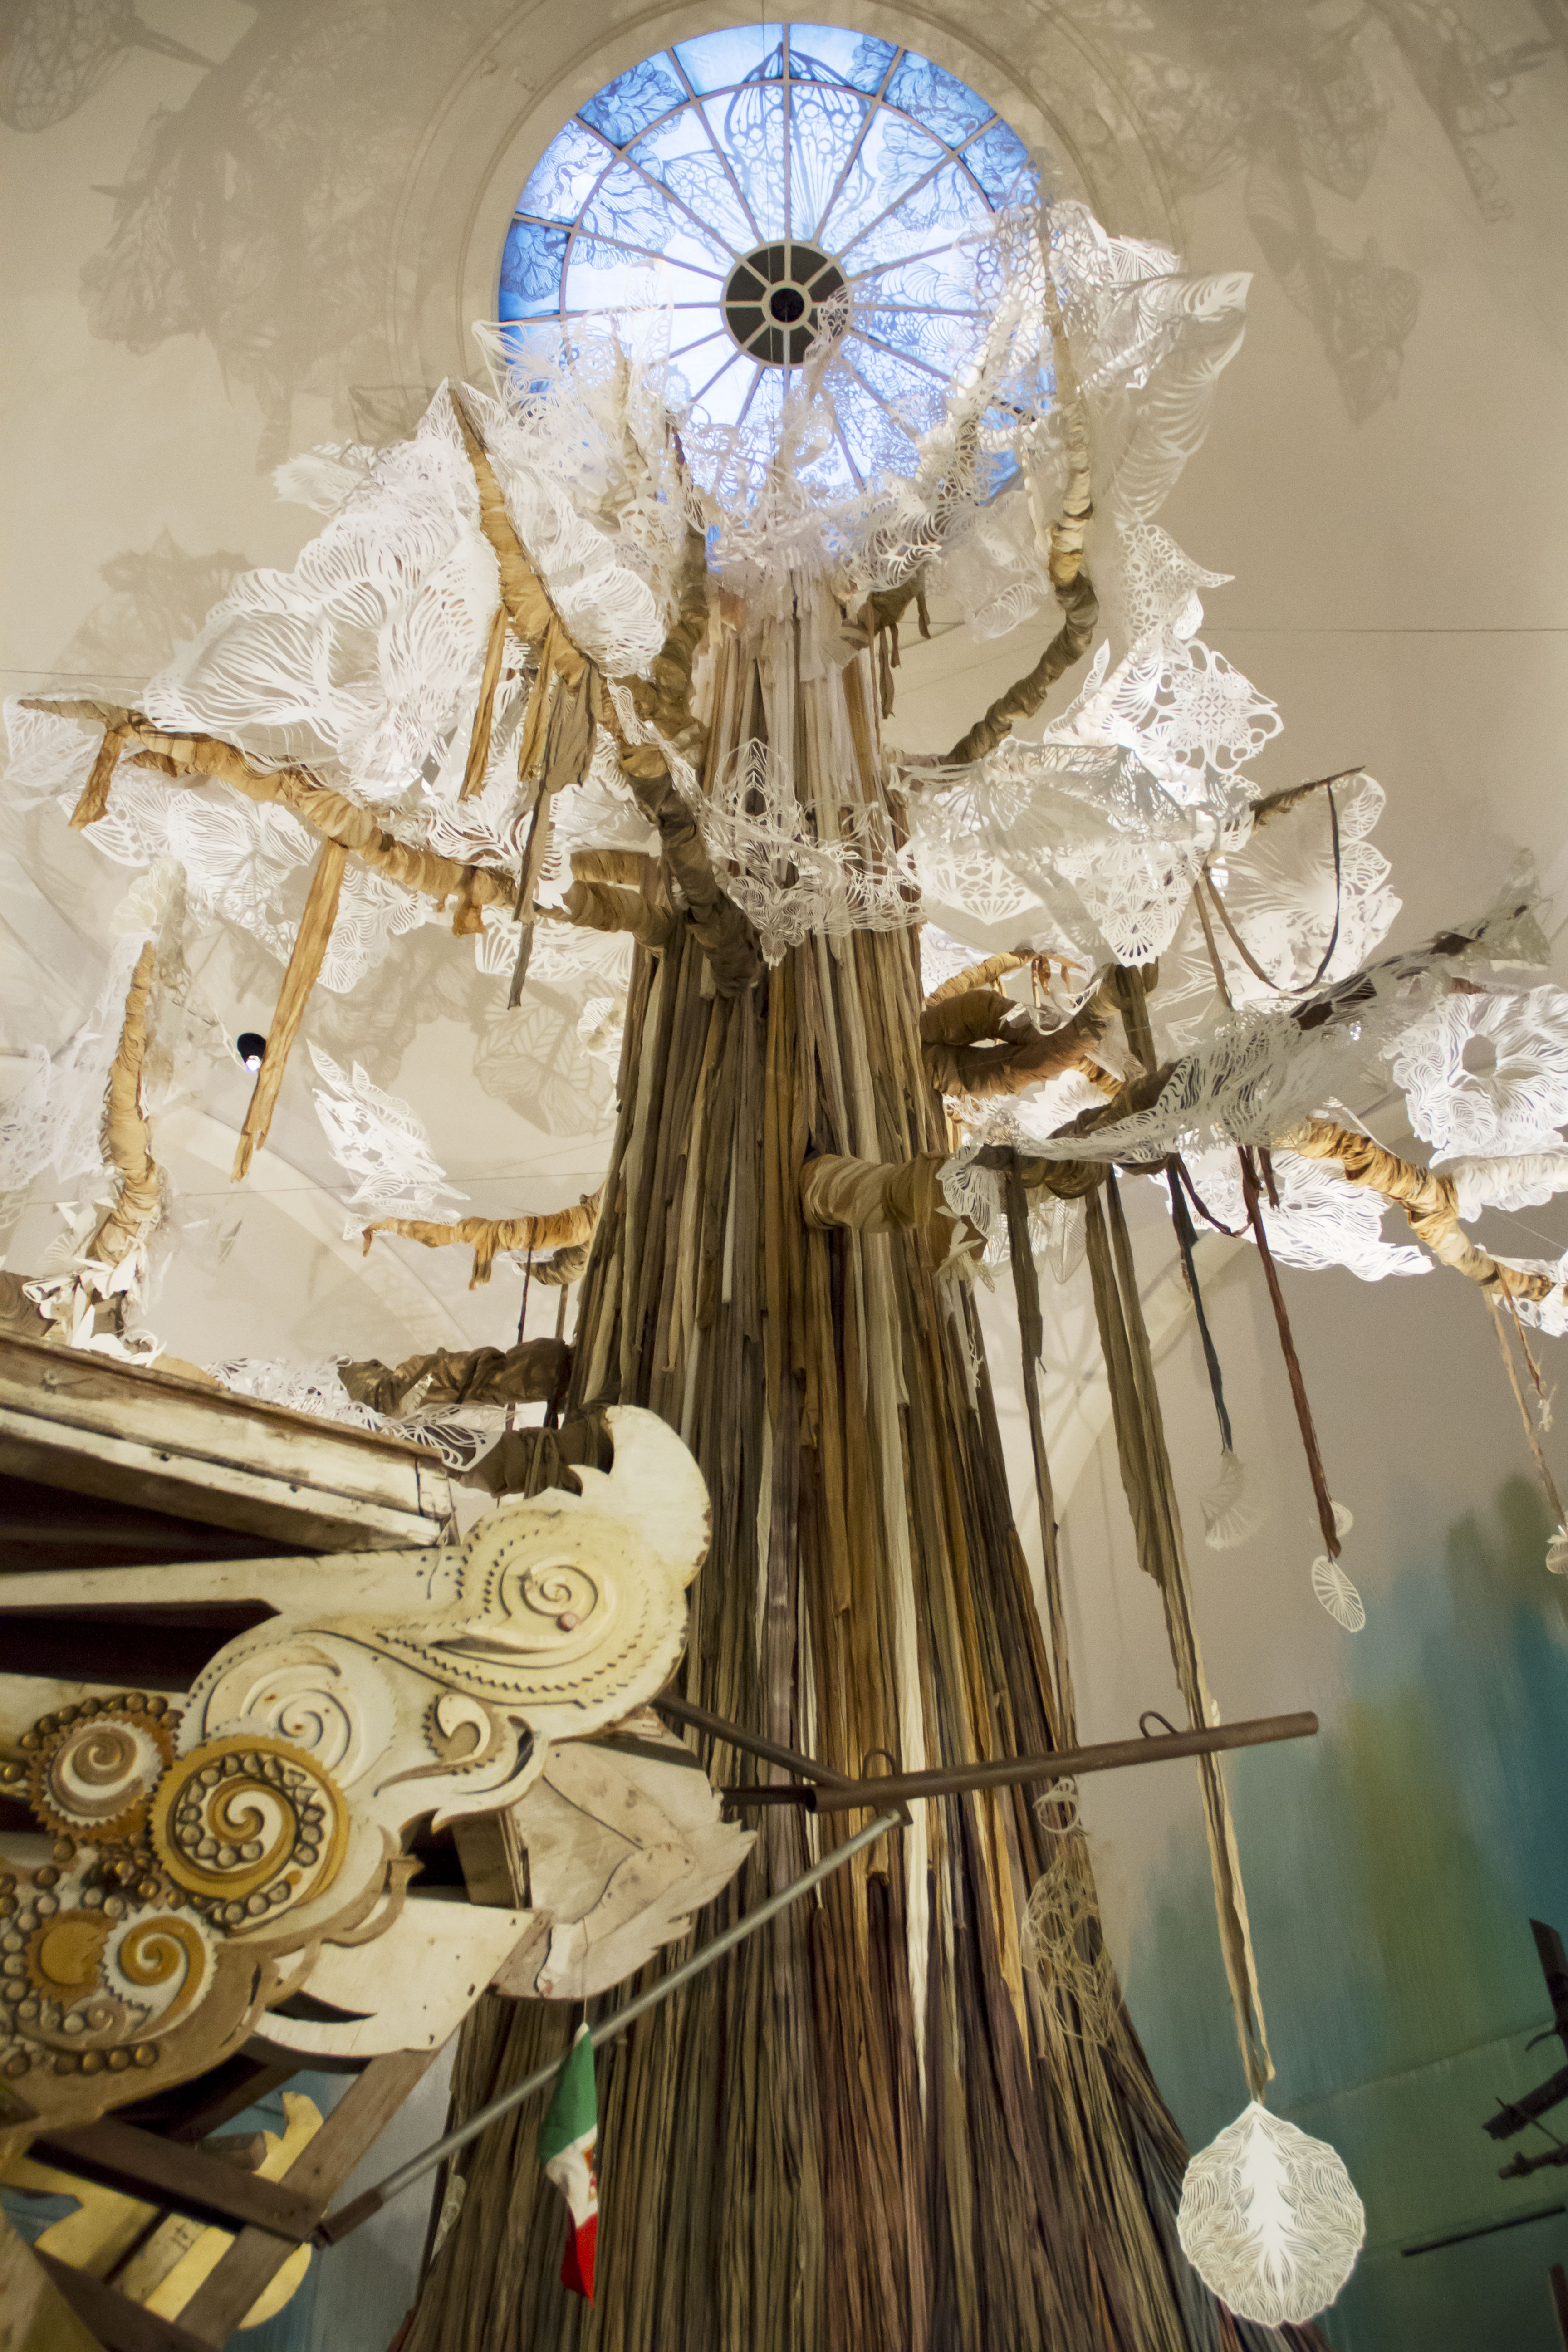 Brooklyn Museum: Swoon: Submerged Motherlands